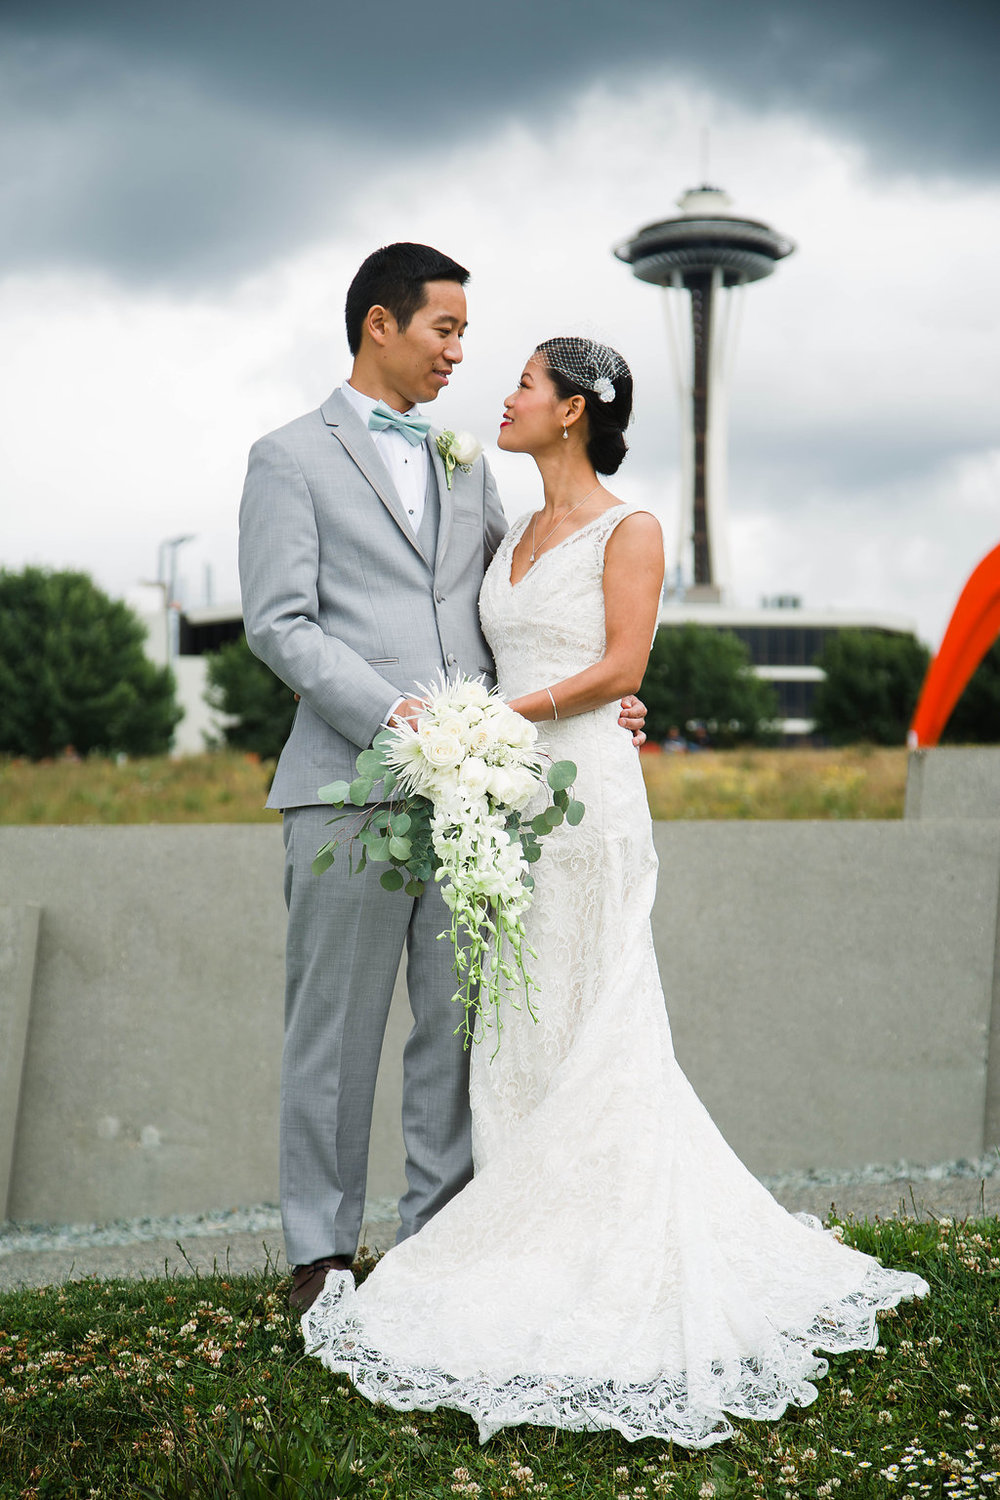 Bao_Uyen+Chris_Wedding_Seattle_Bell_Harbor_6182016_205.jpg